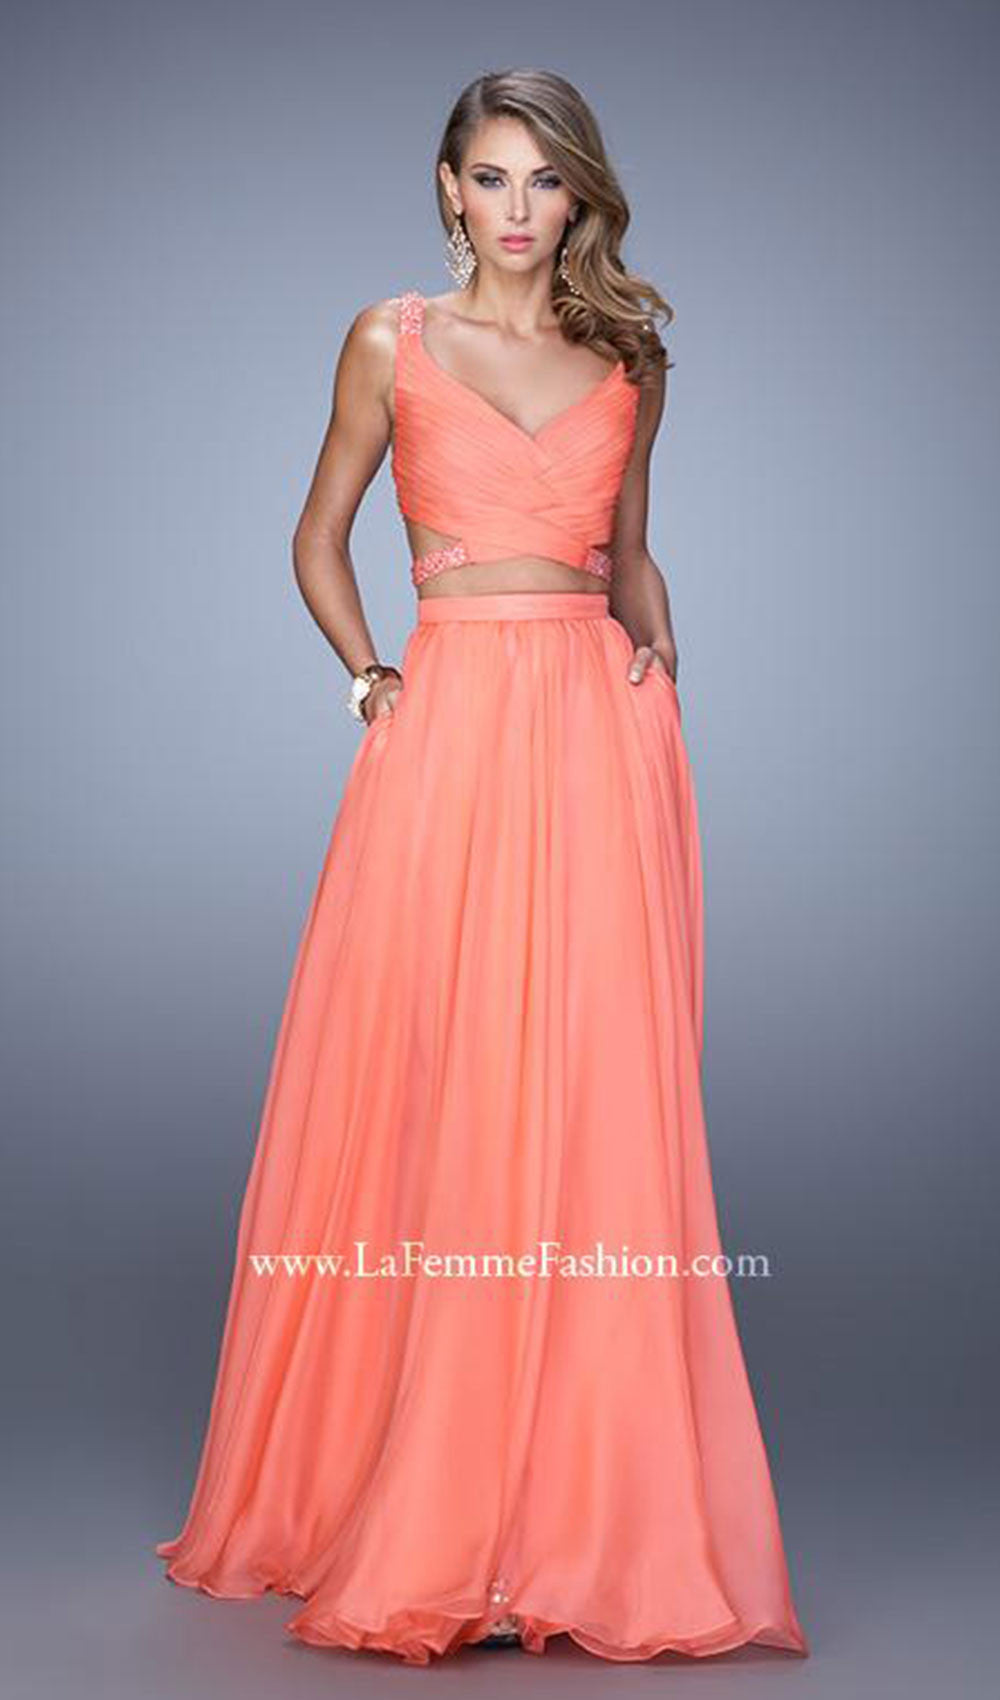 Strappy Shimmer Wrapped Evening Dress | La Femme - STYLE 21152